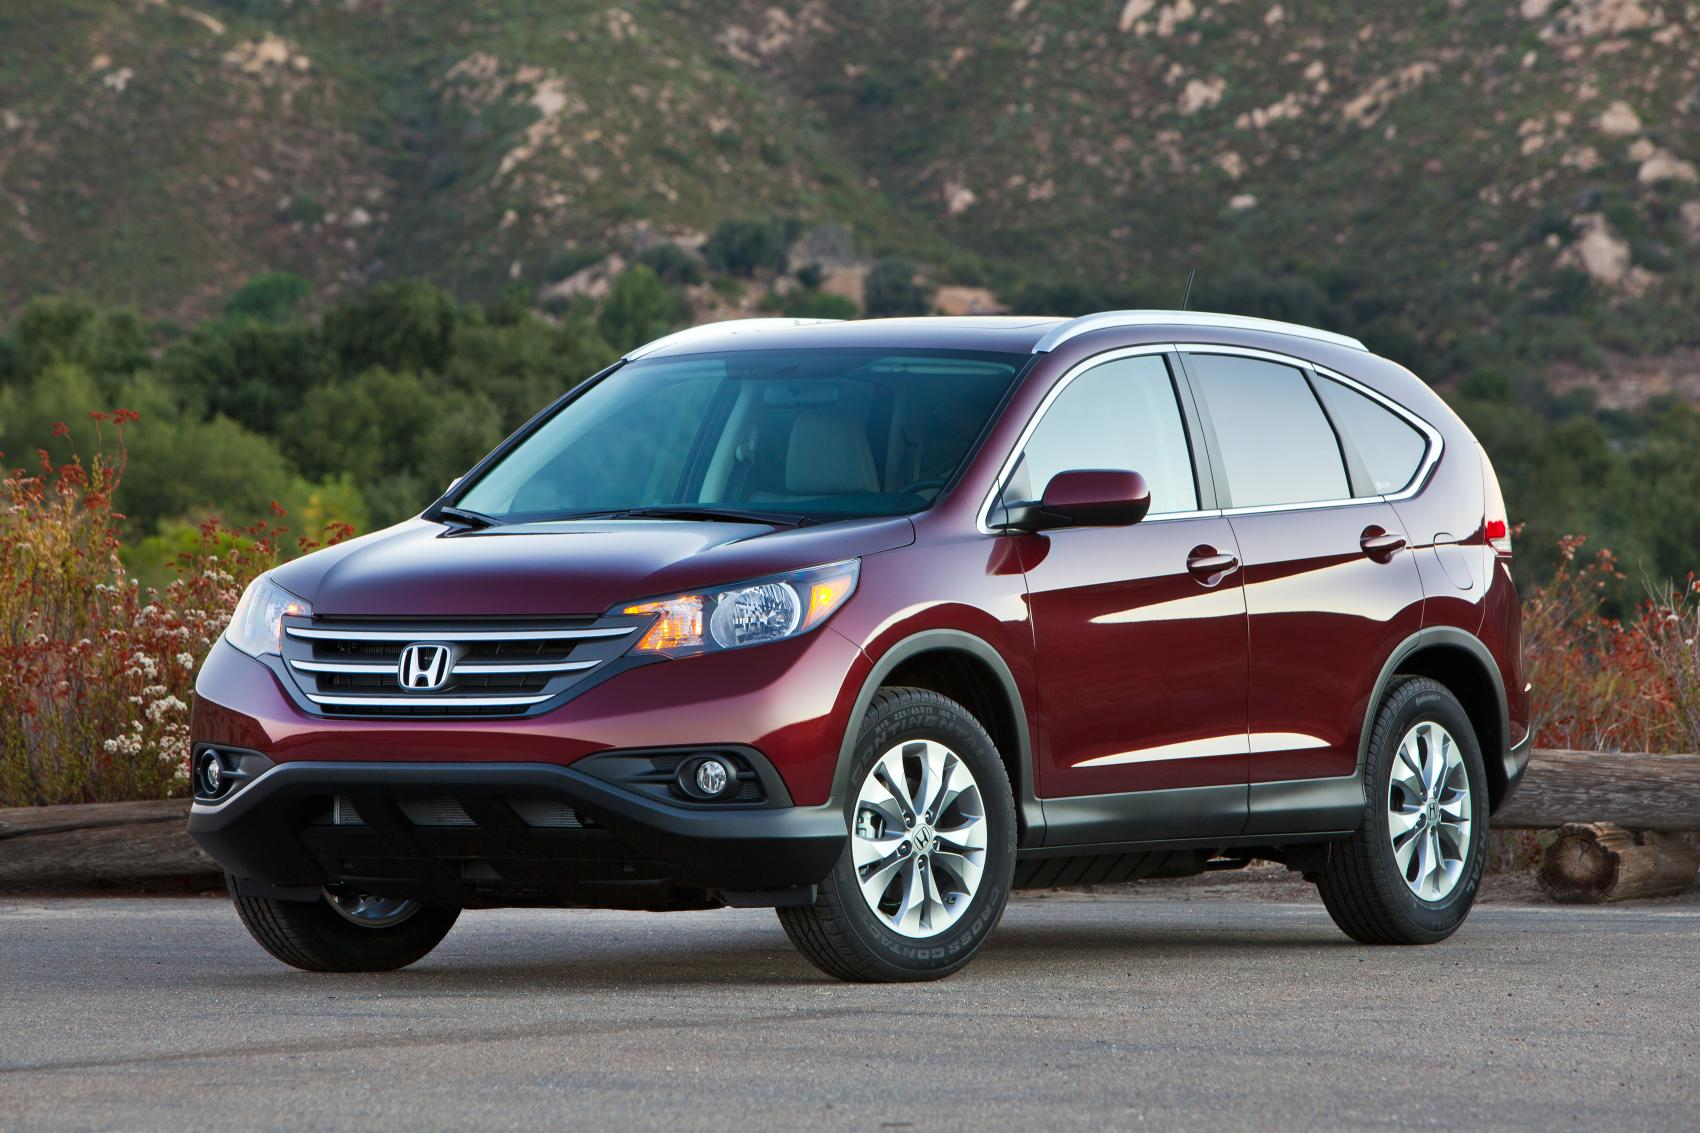 2014 honda cr v us pricing announced autoevolution